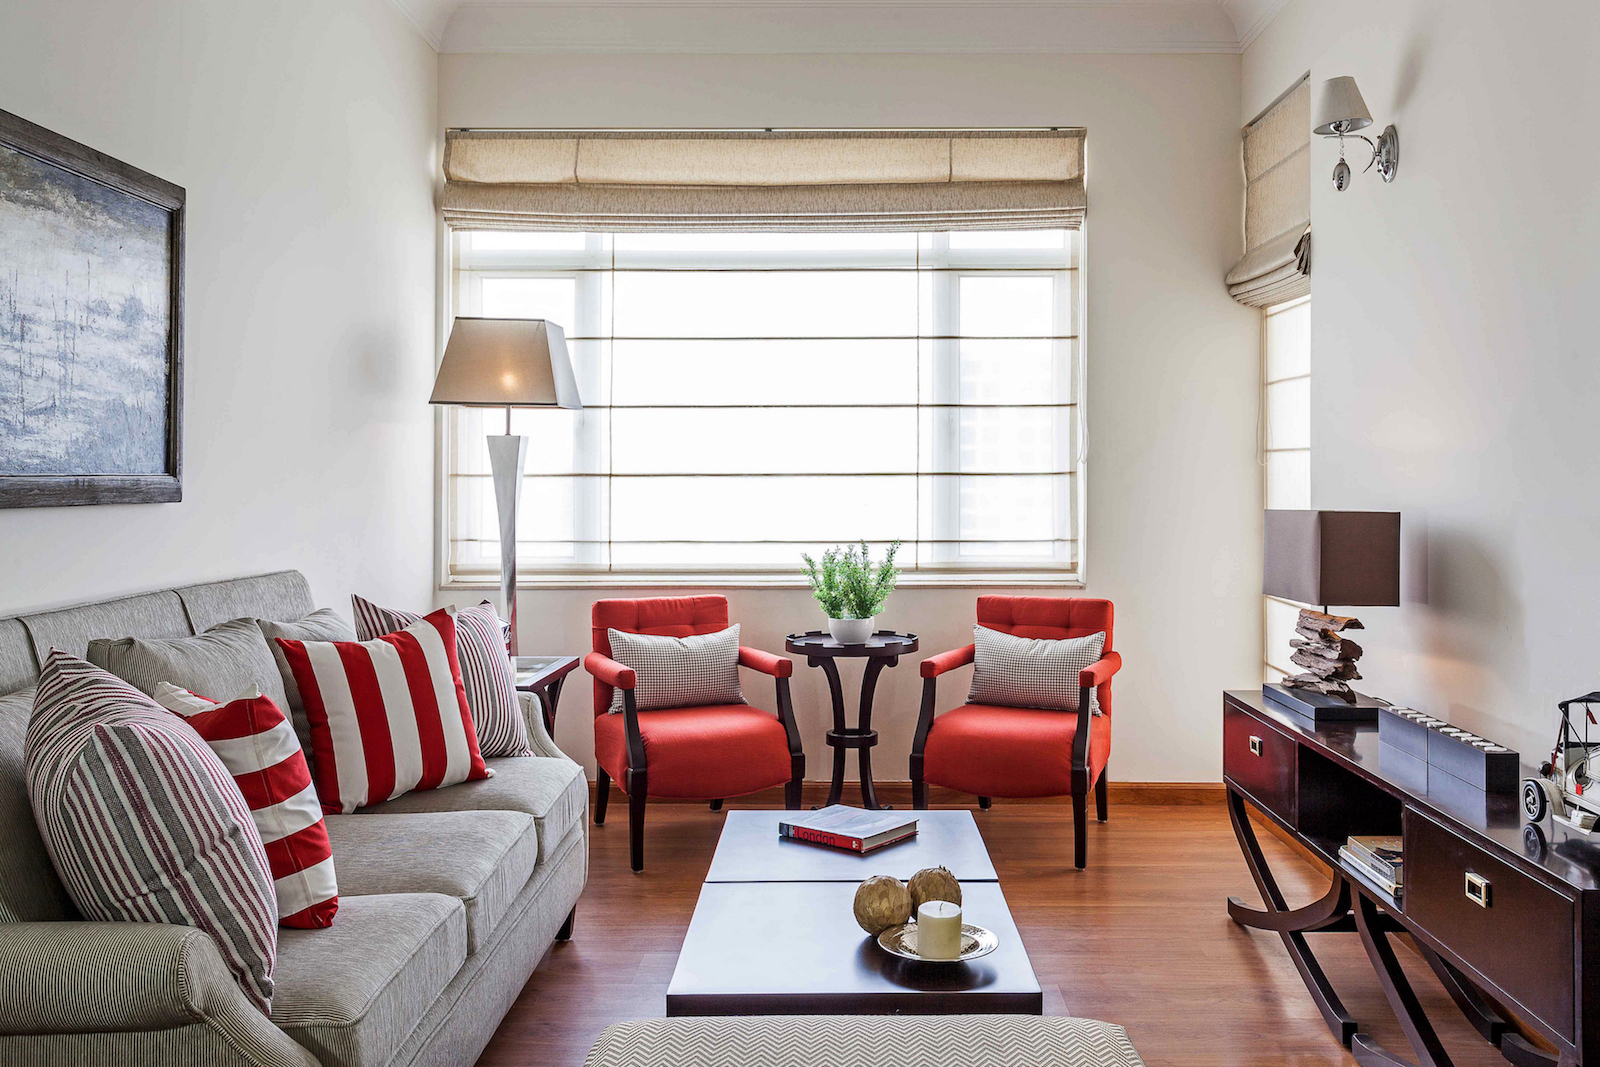 House Tour: Inside A Delhi 4BHK With Timeless Transitional Decor Ideas